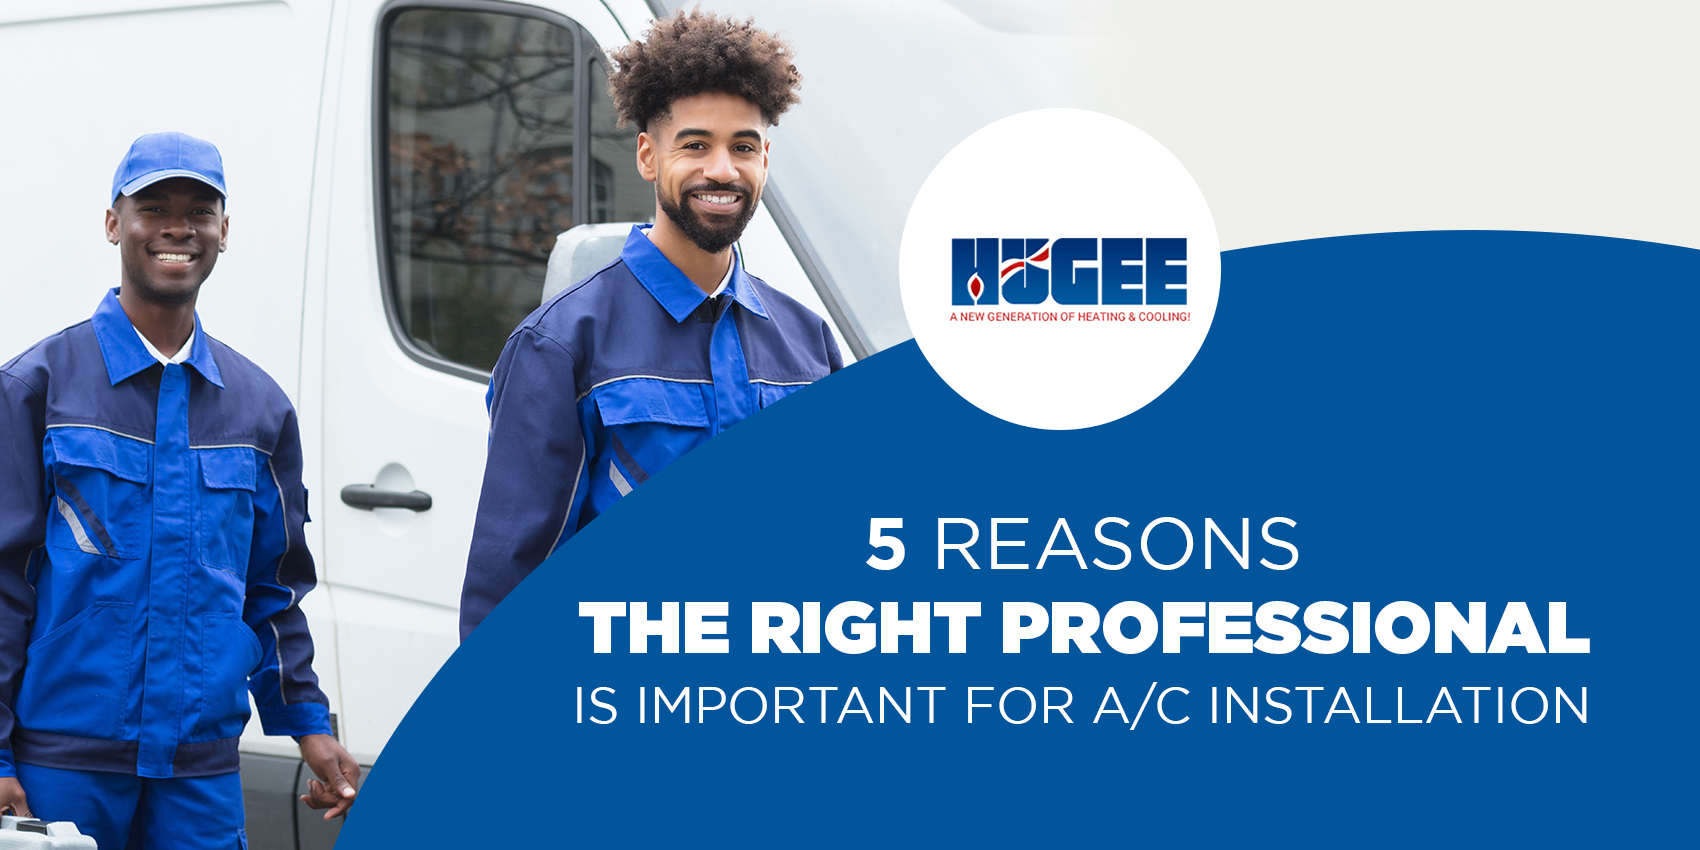 5 Reasons the Right Professional is Important for A/C Installation